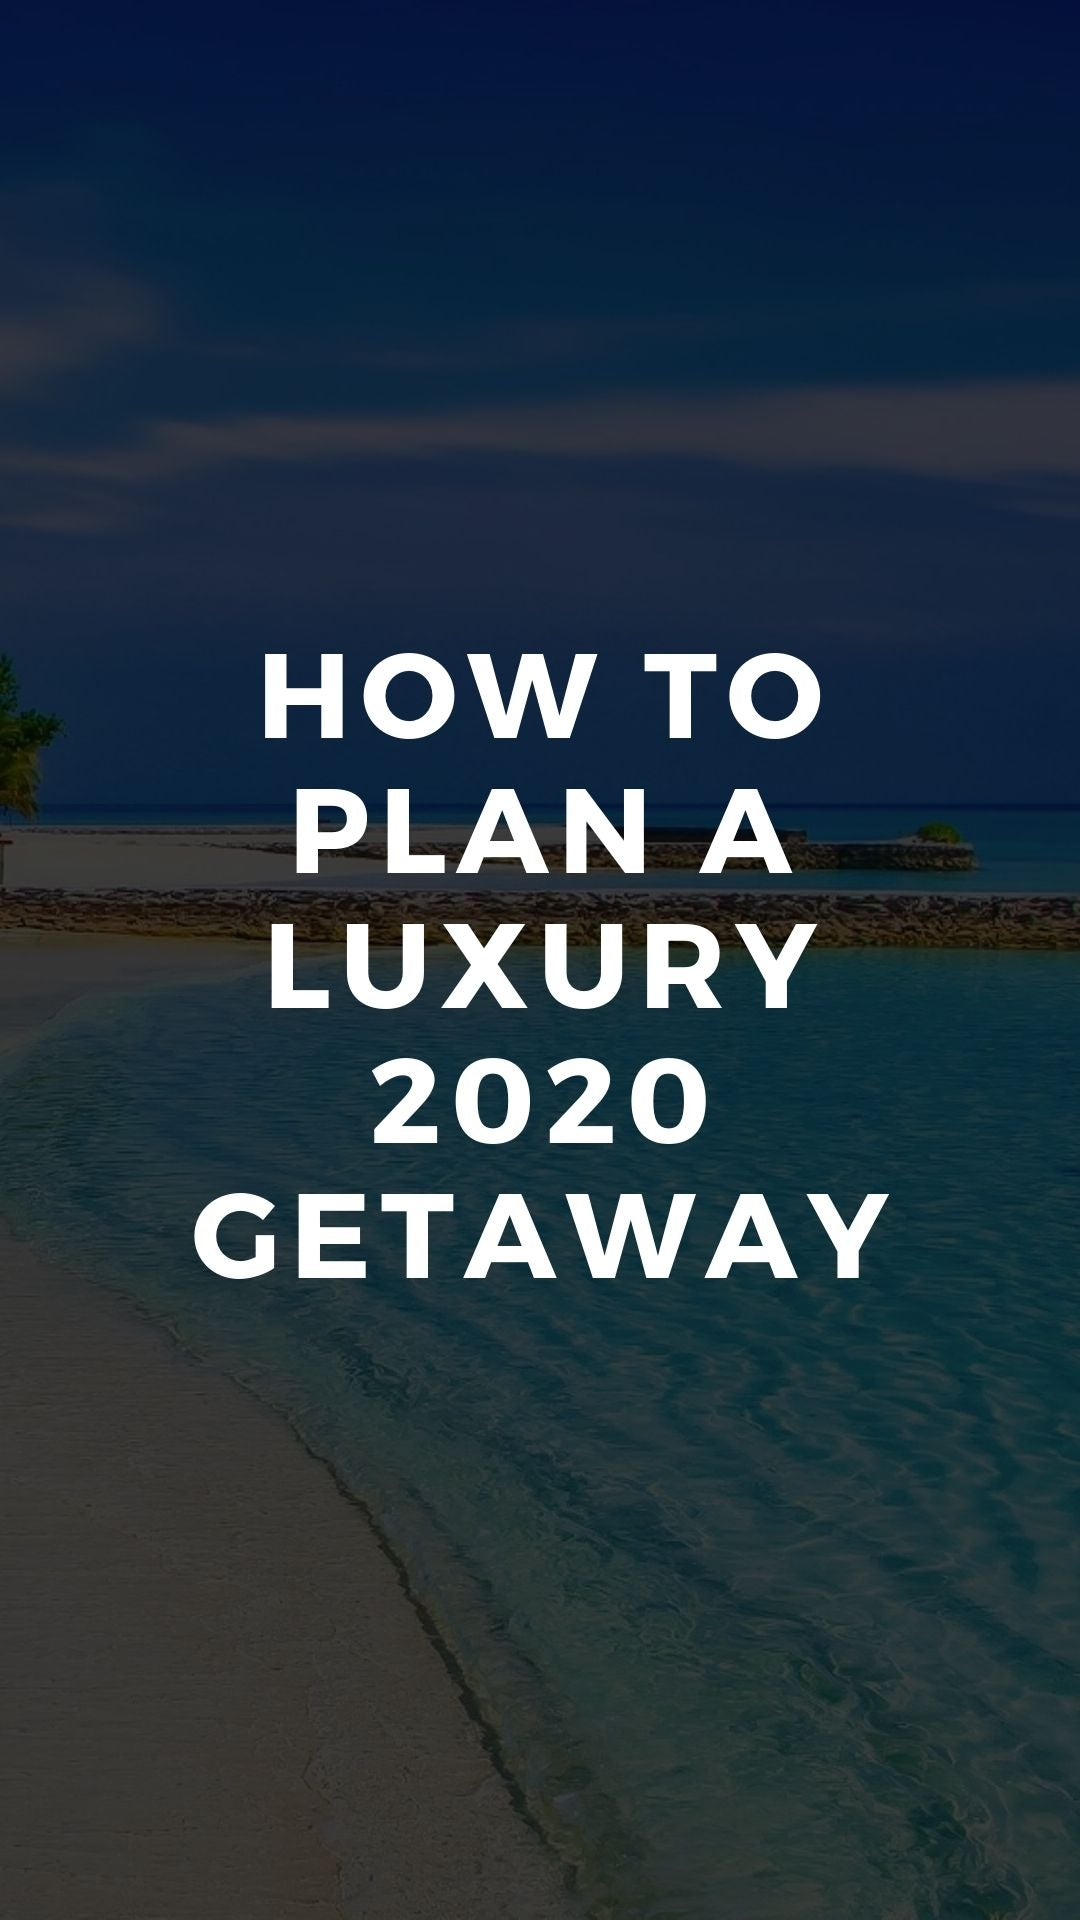 How to Plan a Luxury 2020 Getaway